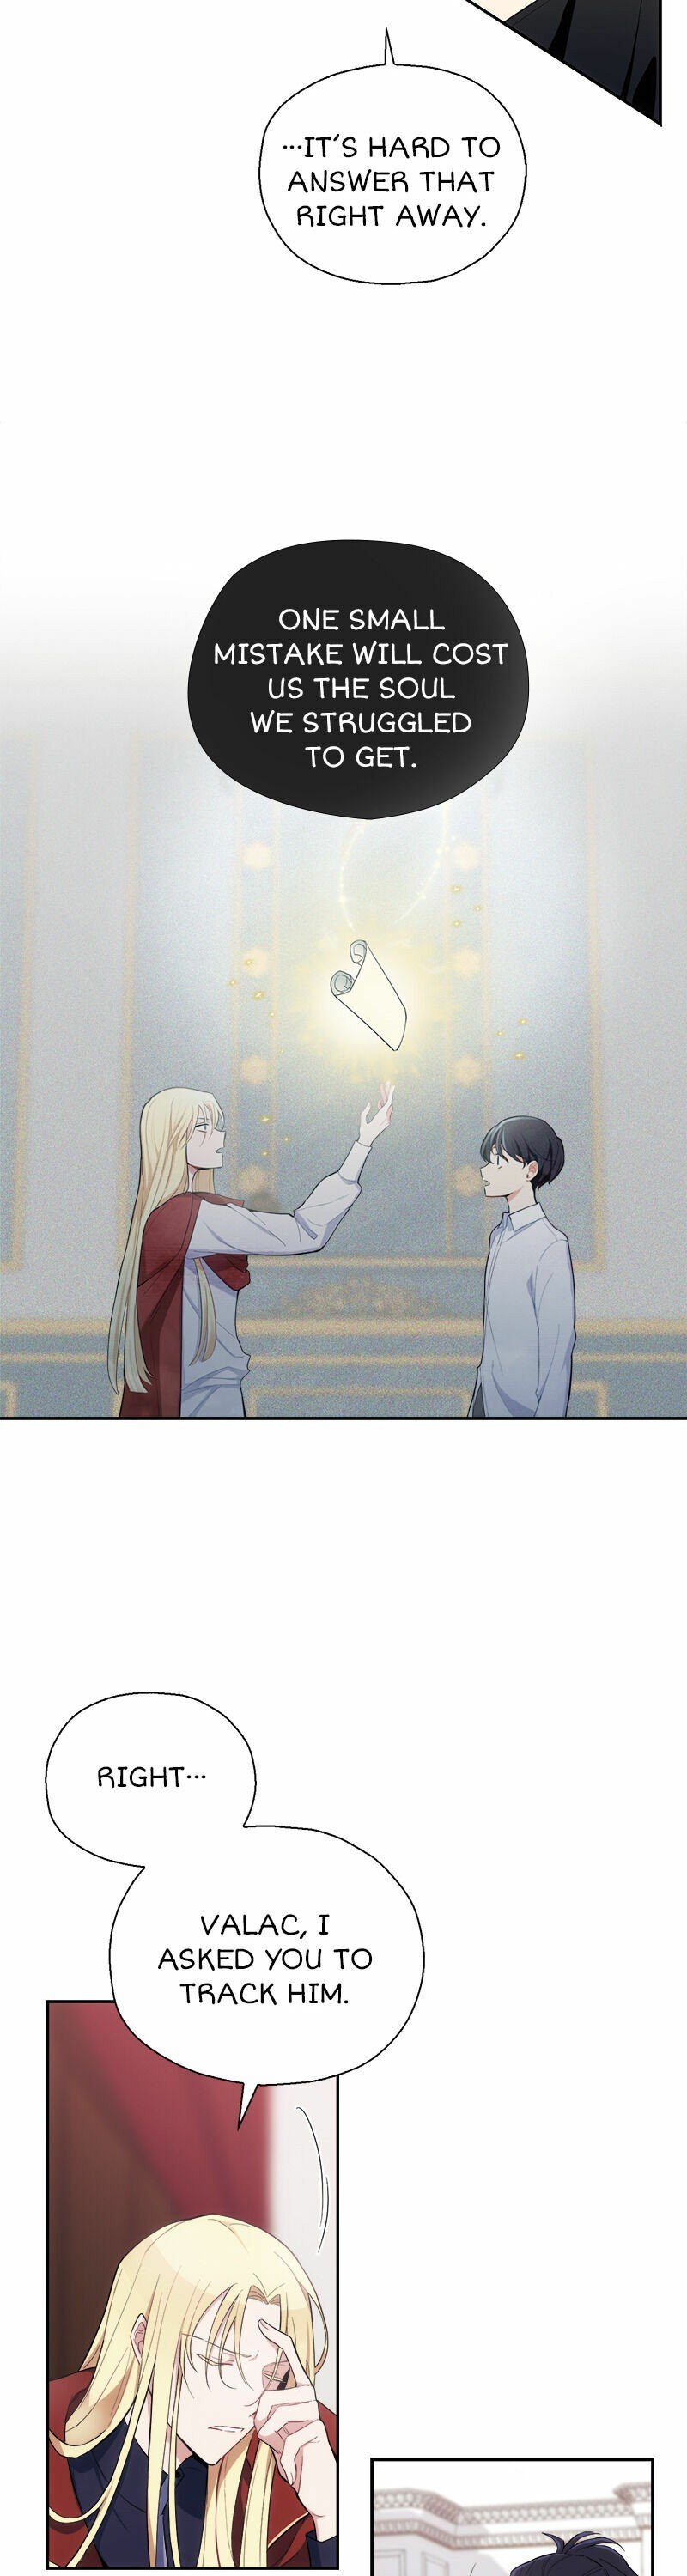 Silver Demon King - chapter 10 - #2